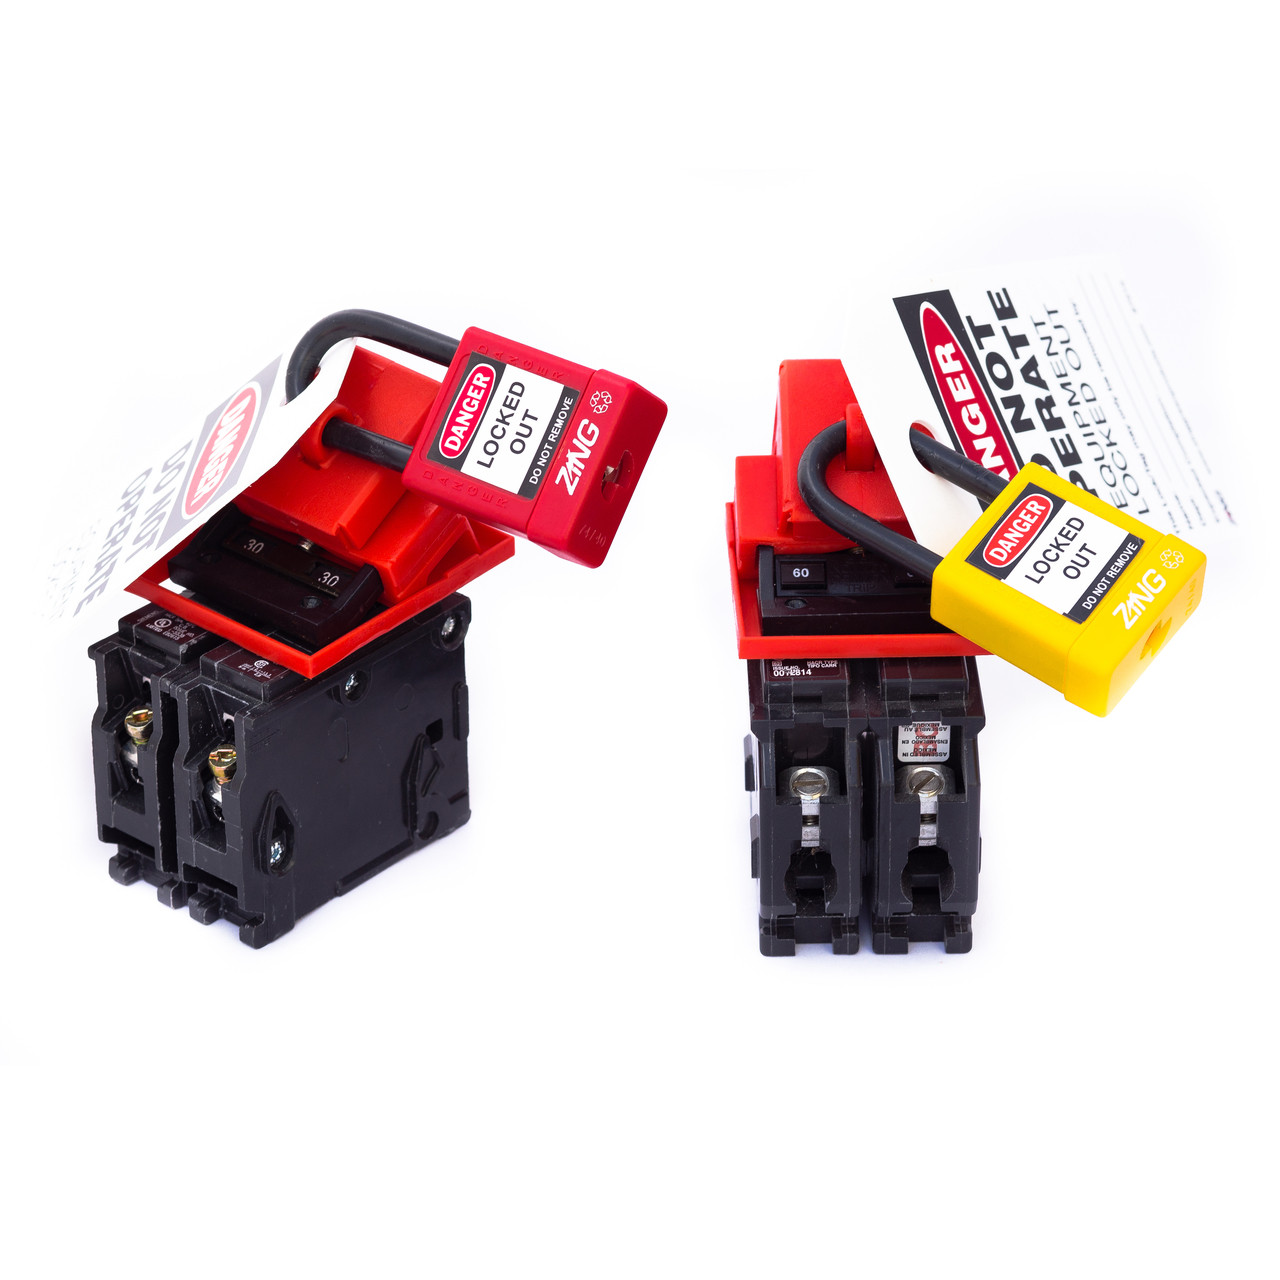 480/600V Clamp-On Breaker Lockout-cleat